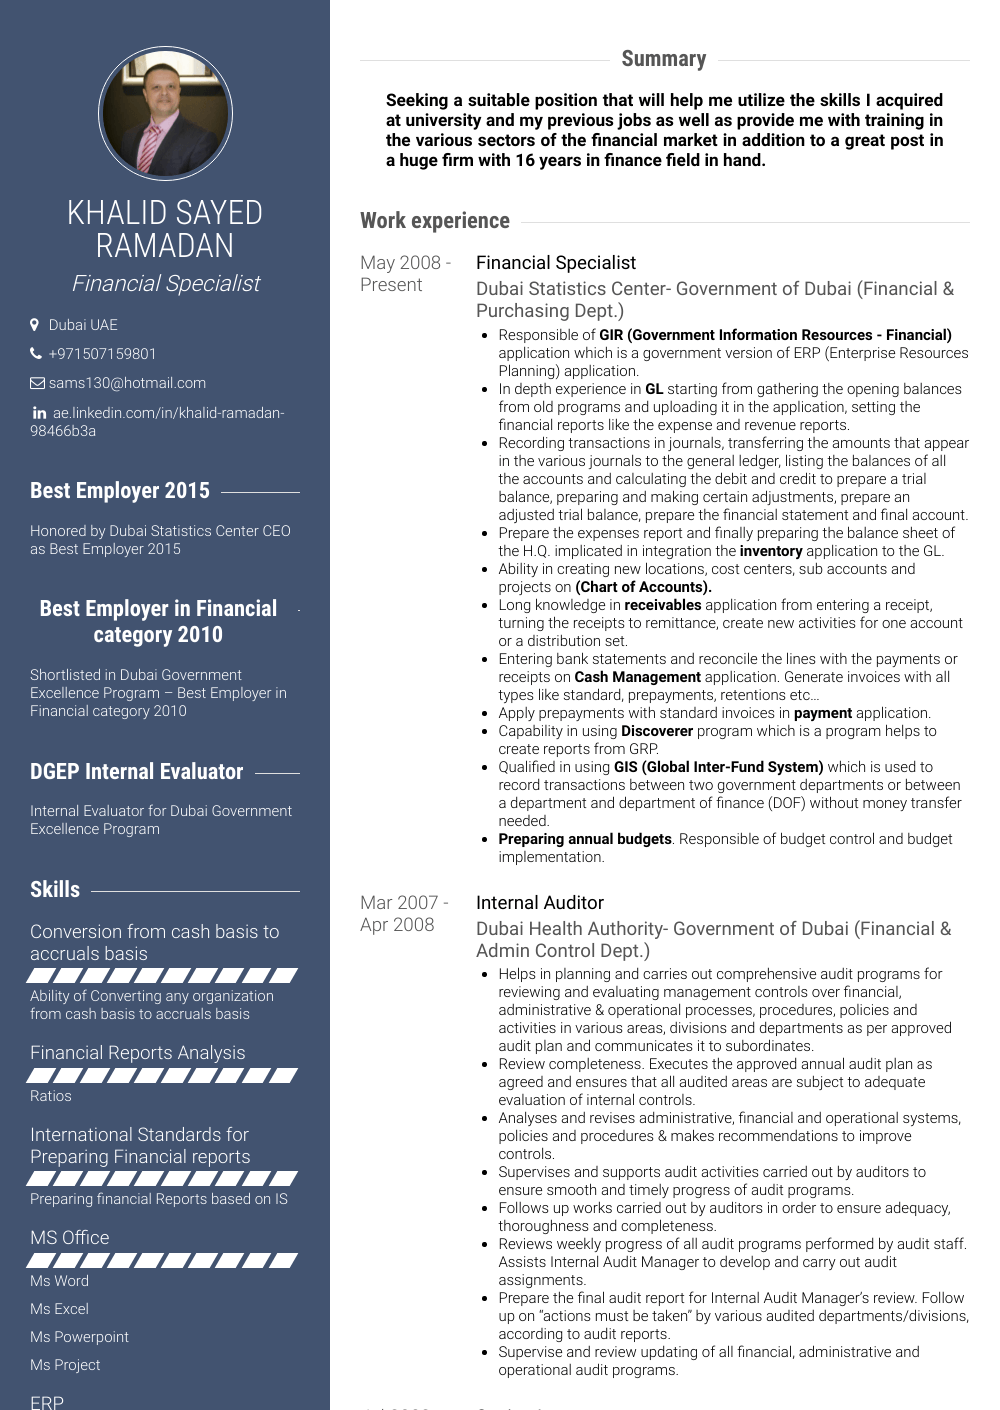 Financial Specialist Resume Samples & Templates VisualCV